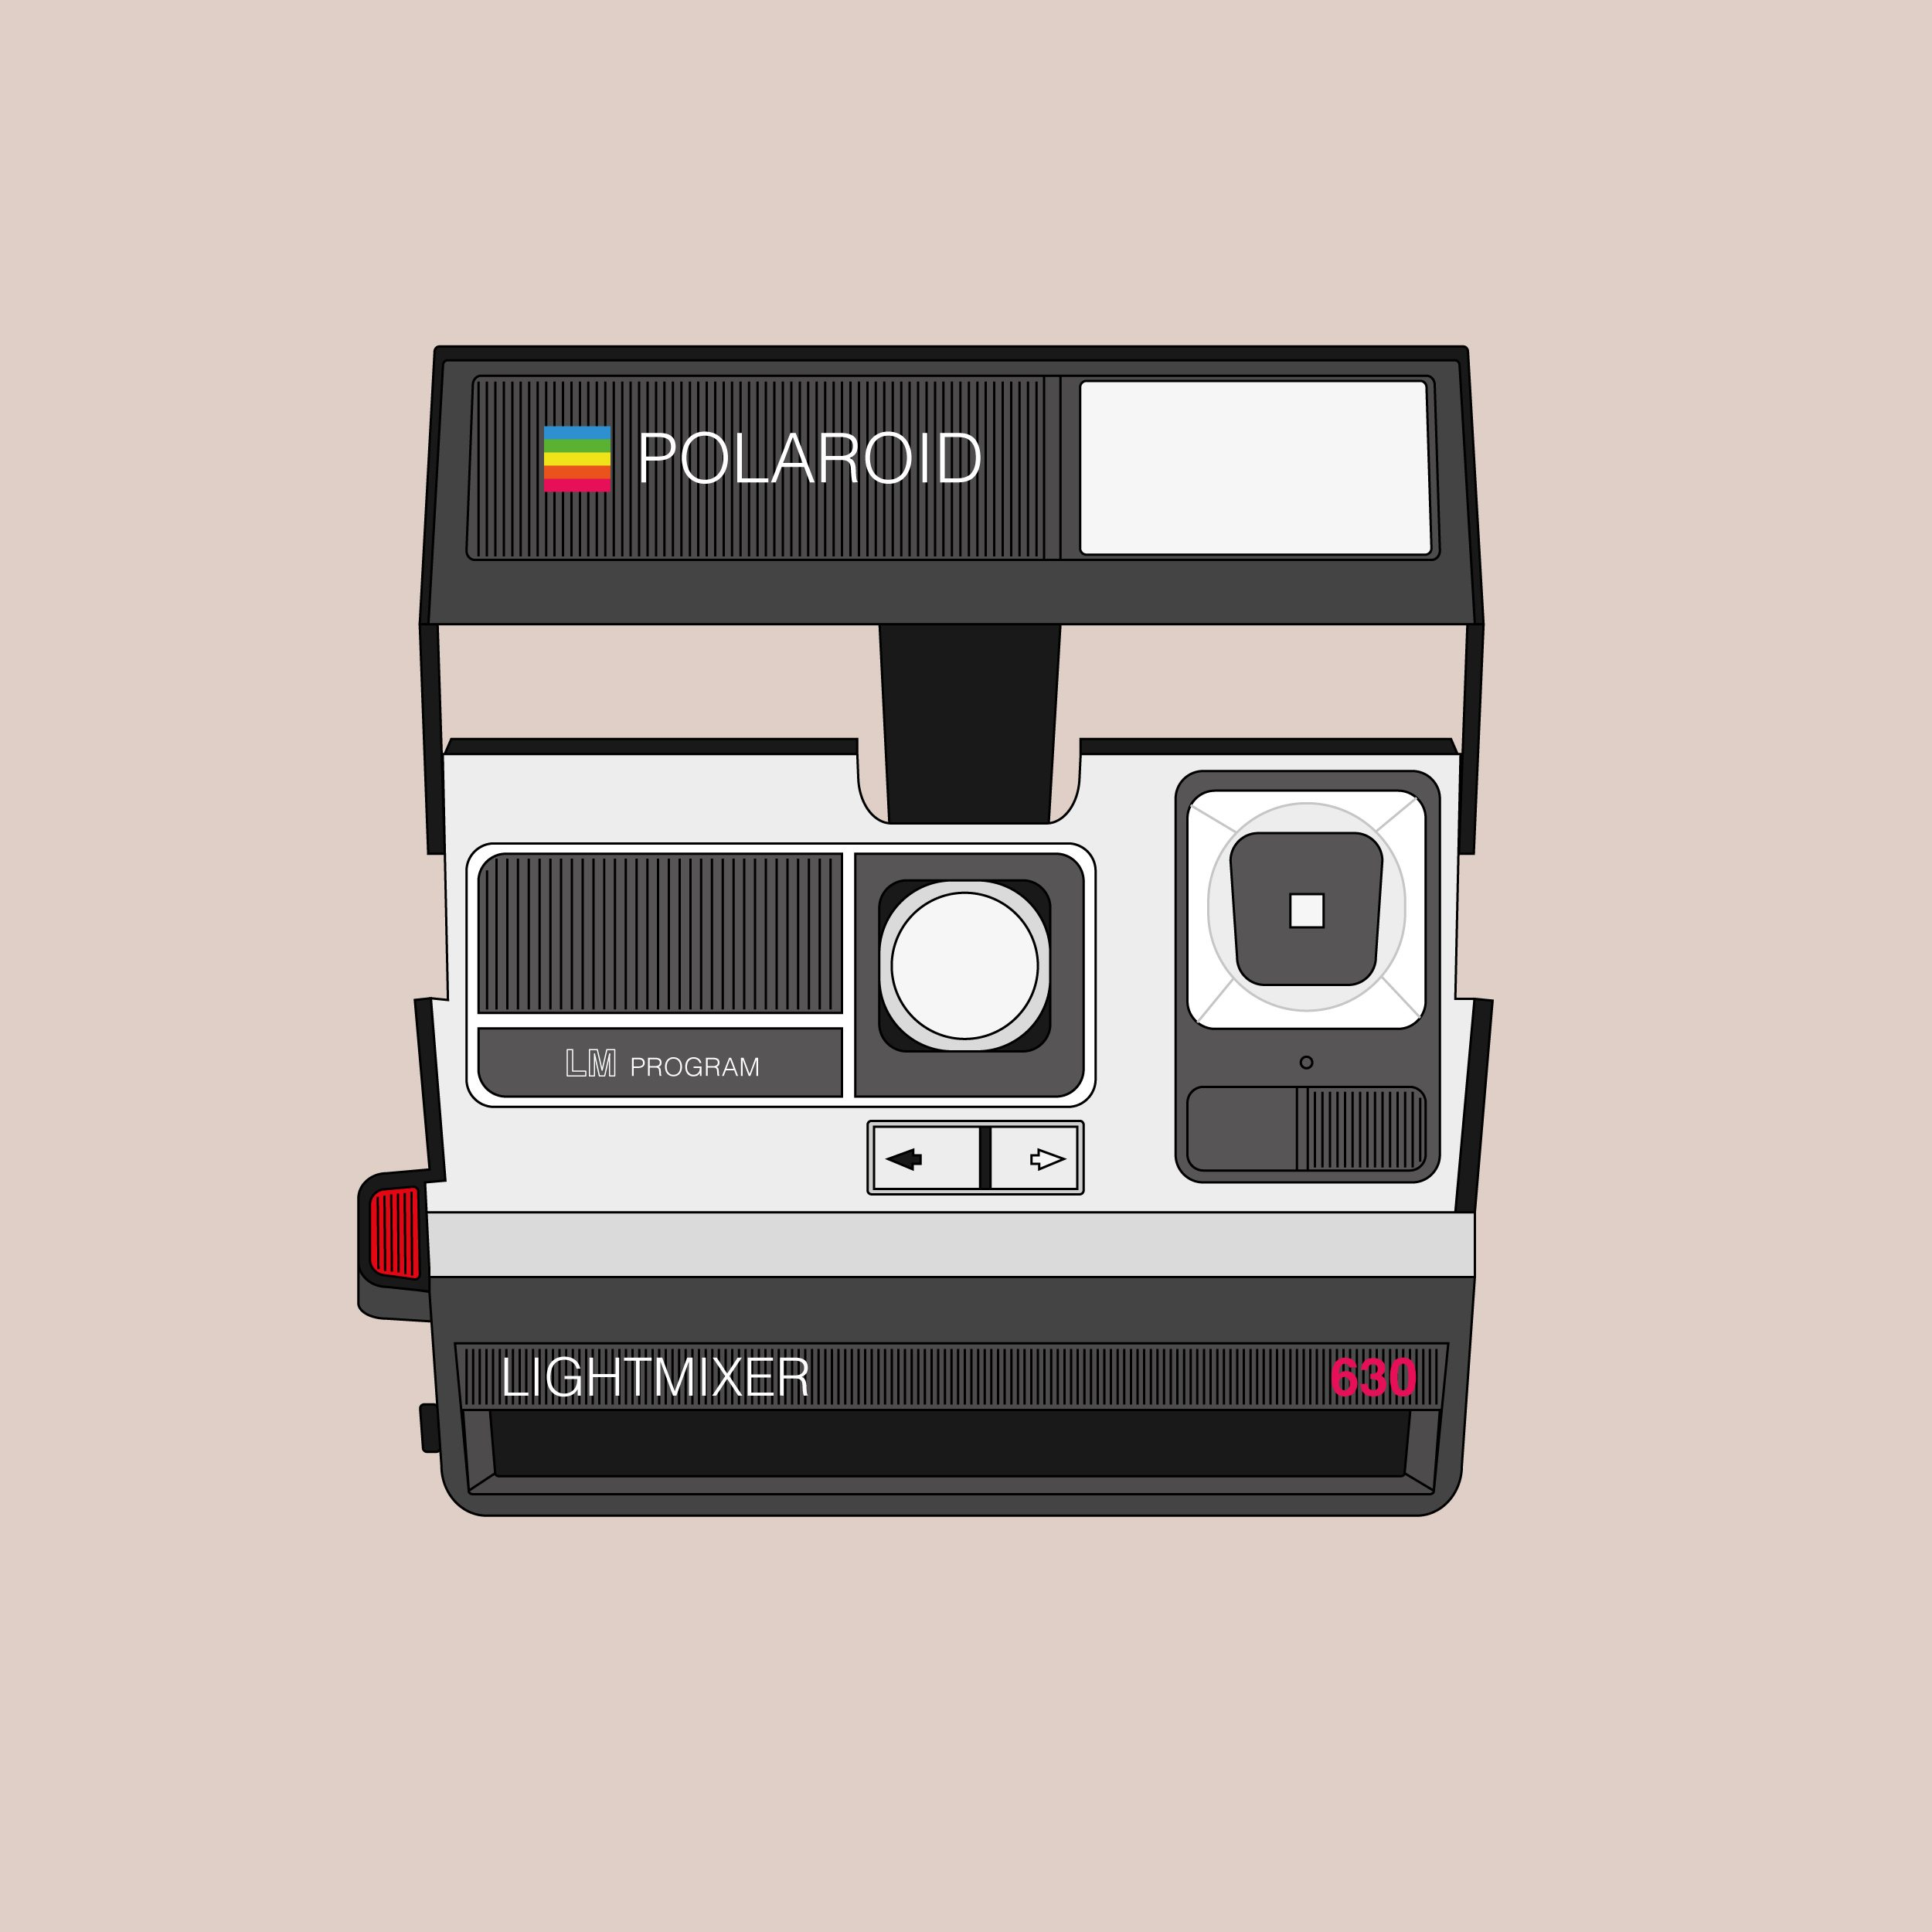 Polaroid 630 (Graphic: David Ortiz)